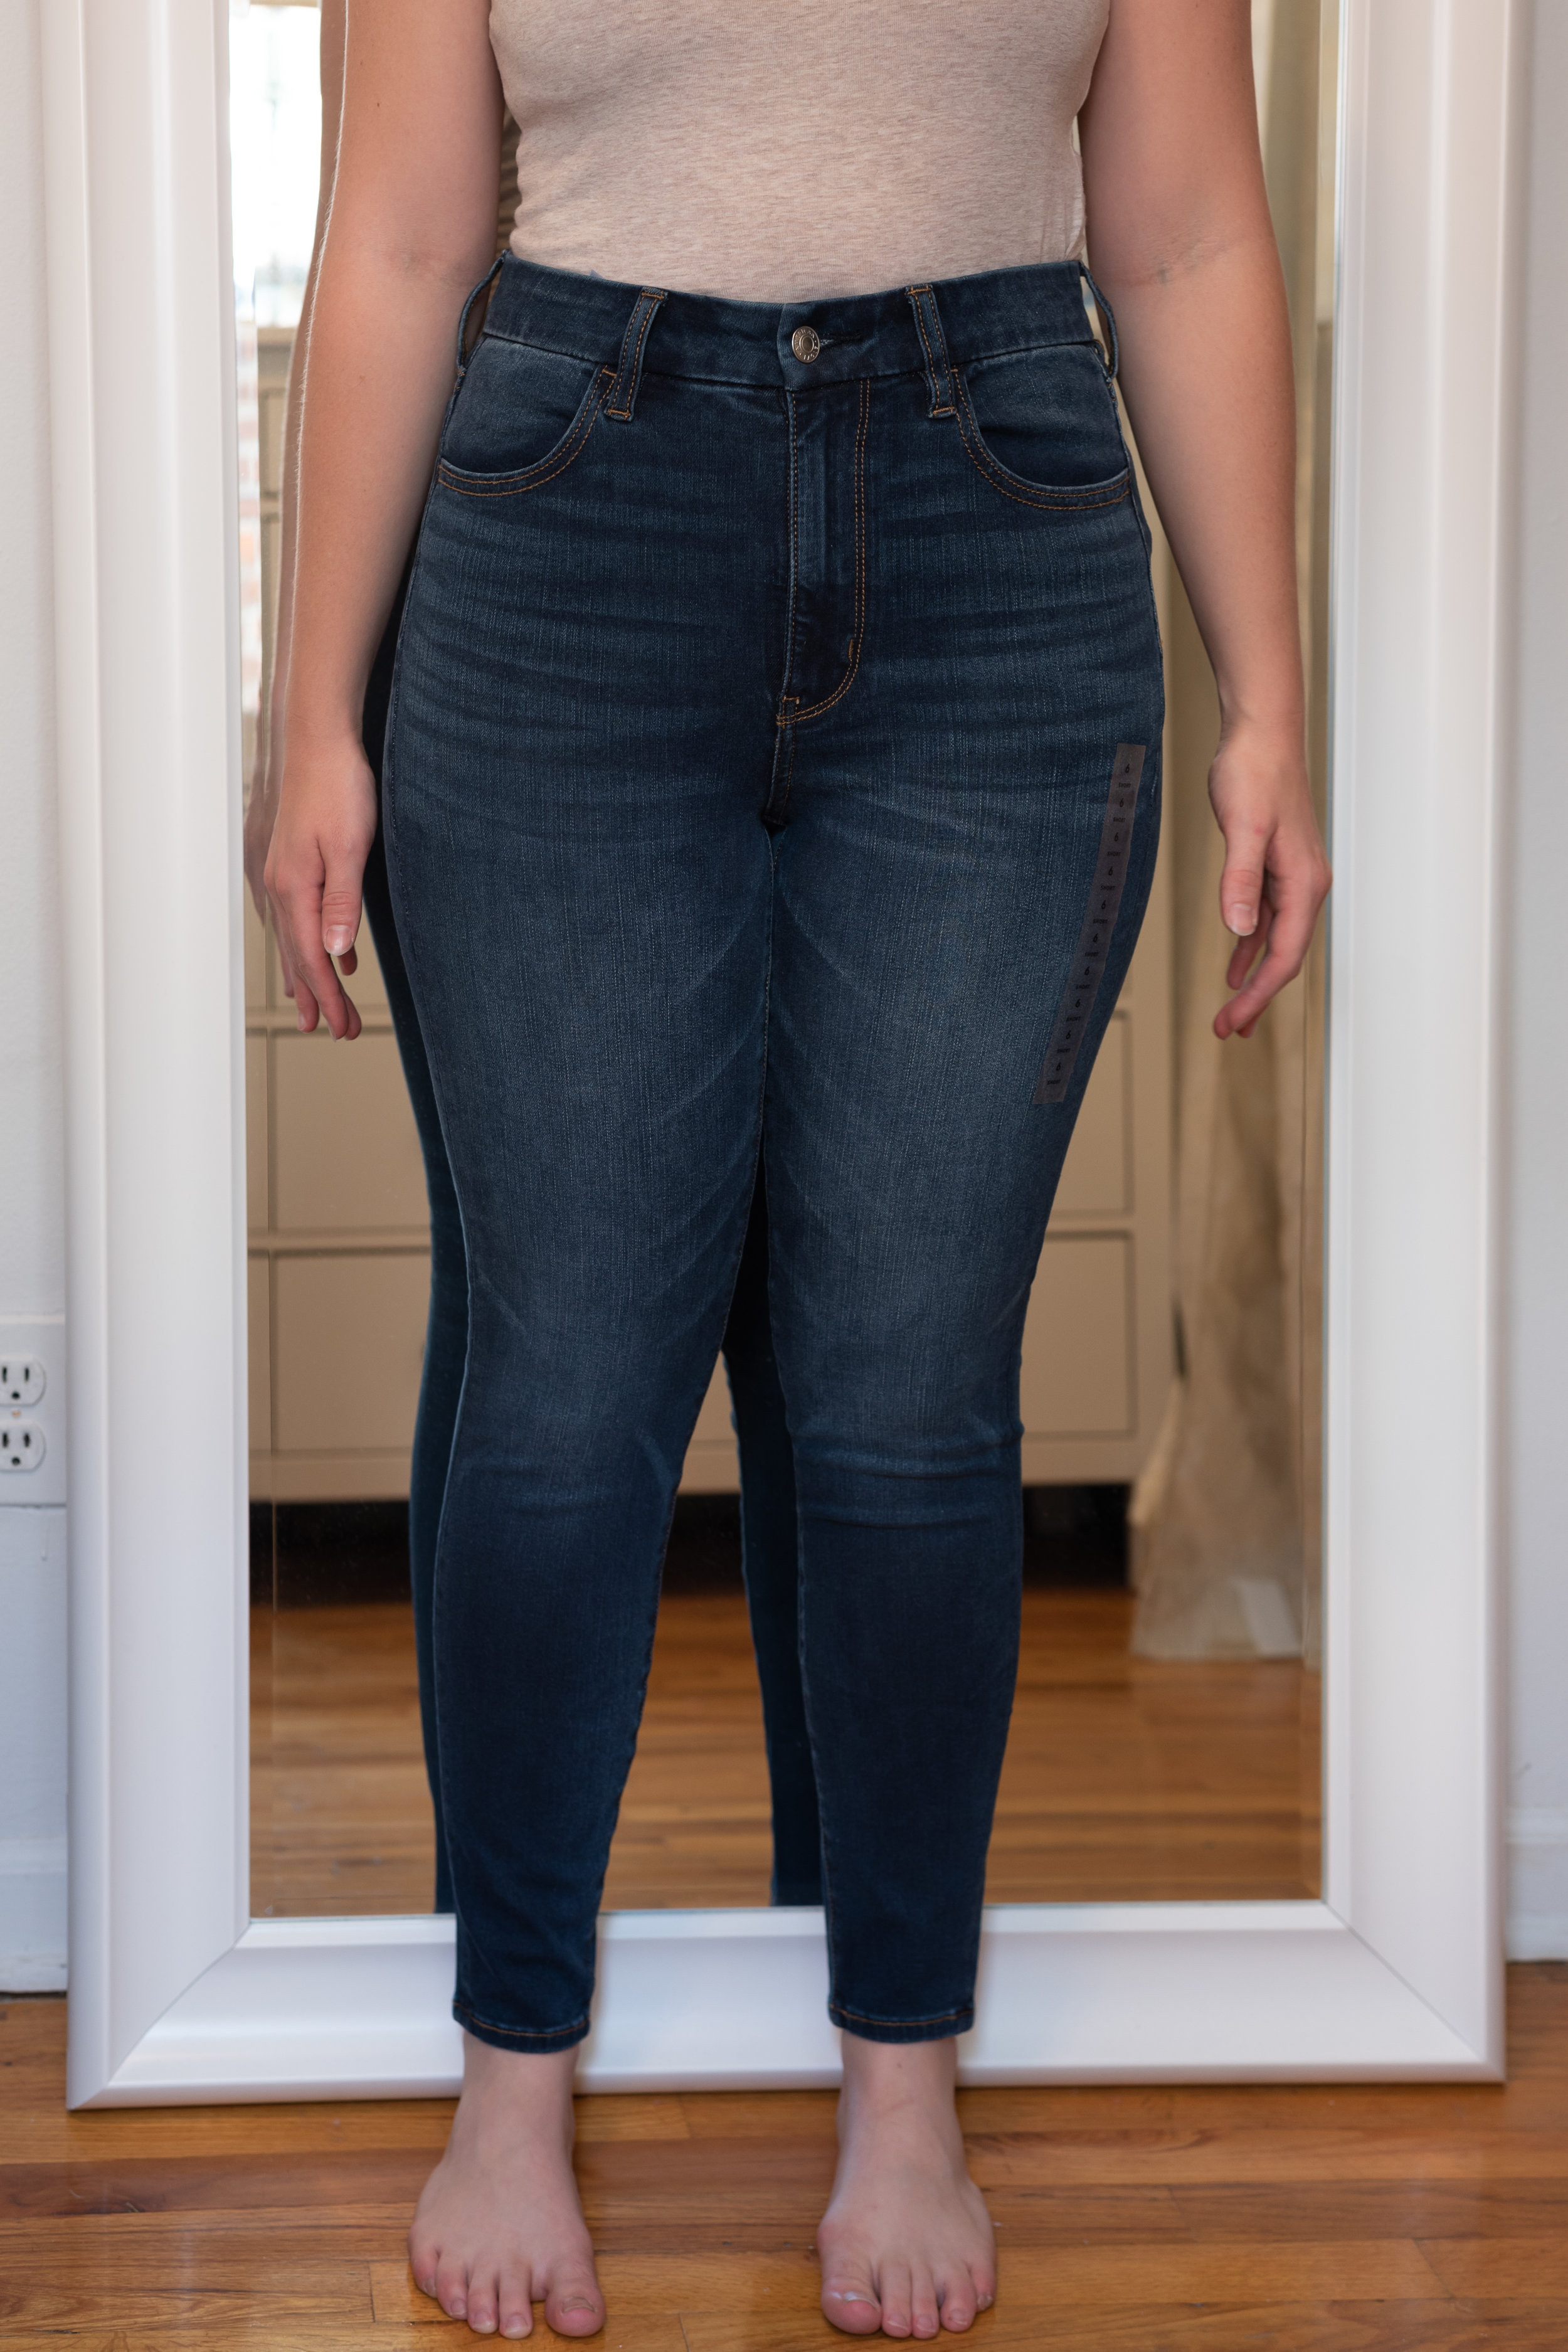 American Eagle Shorts Size Chart : american, eagle, shorts, chart, AMERICAN, EAGLE, CURVY, PETITE, DENIM, REVIEW, Petite, Project